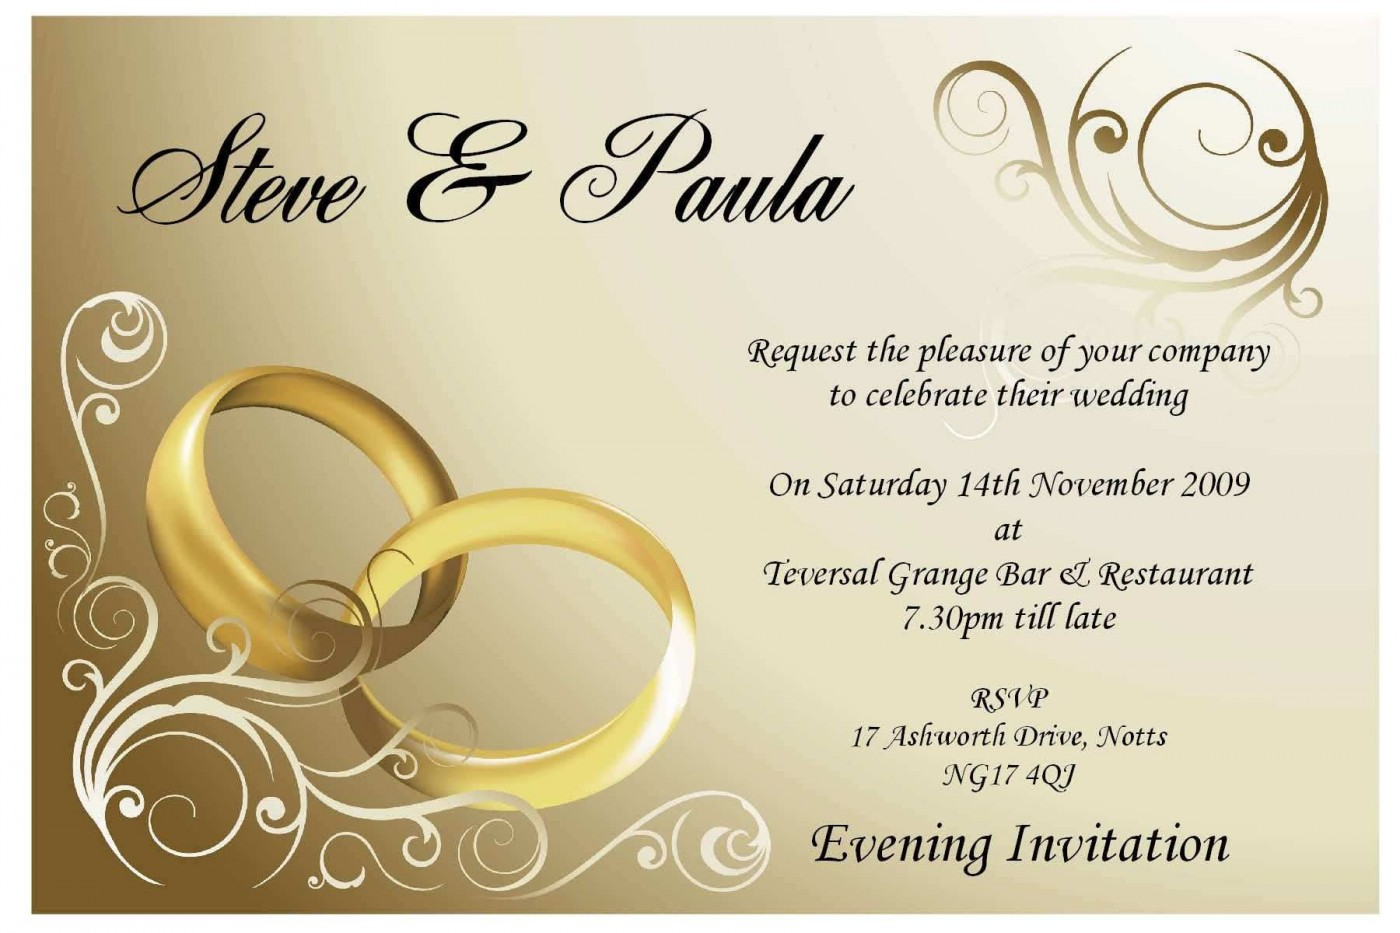 003 Fantastic Free Online Indian Wedding Invitation Card Template Highest Clarity 1400